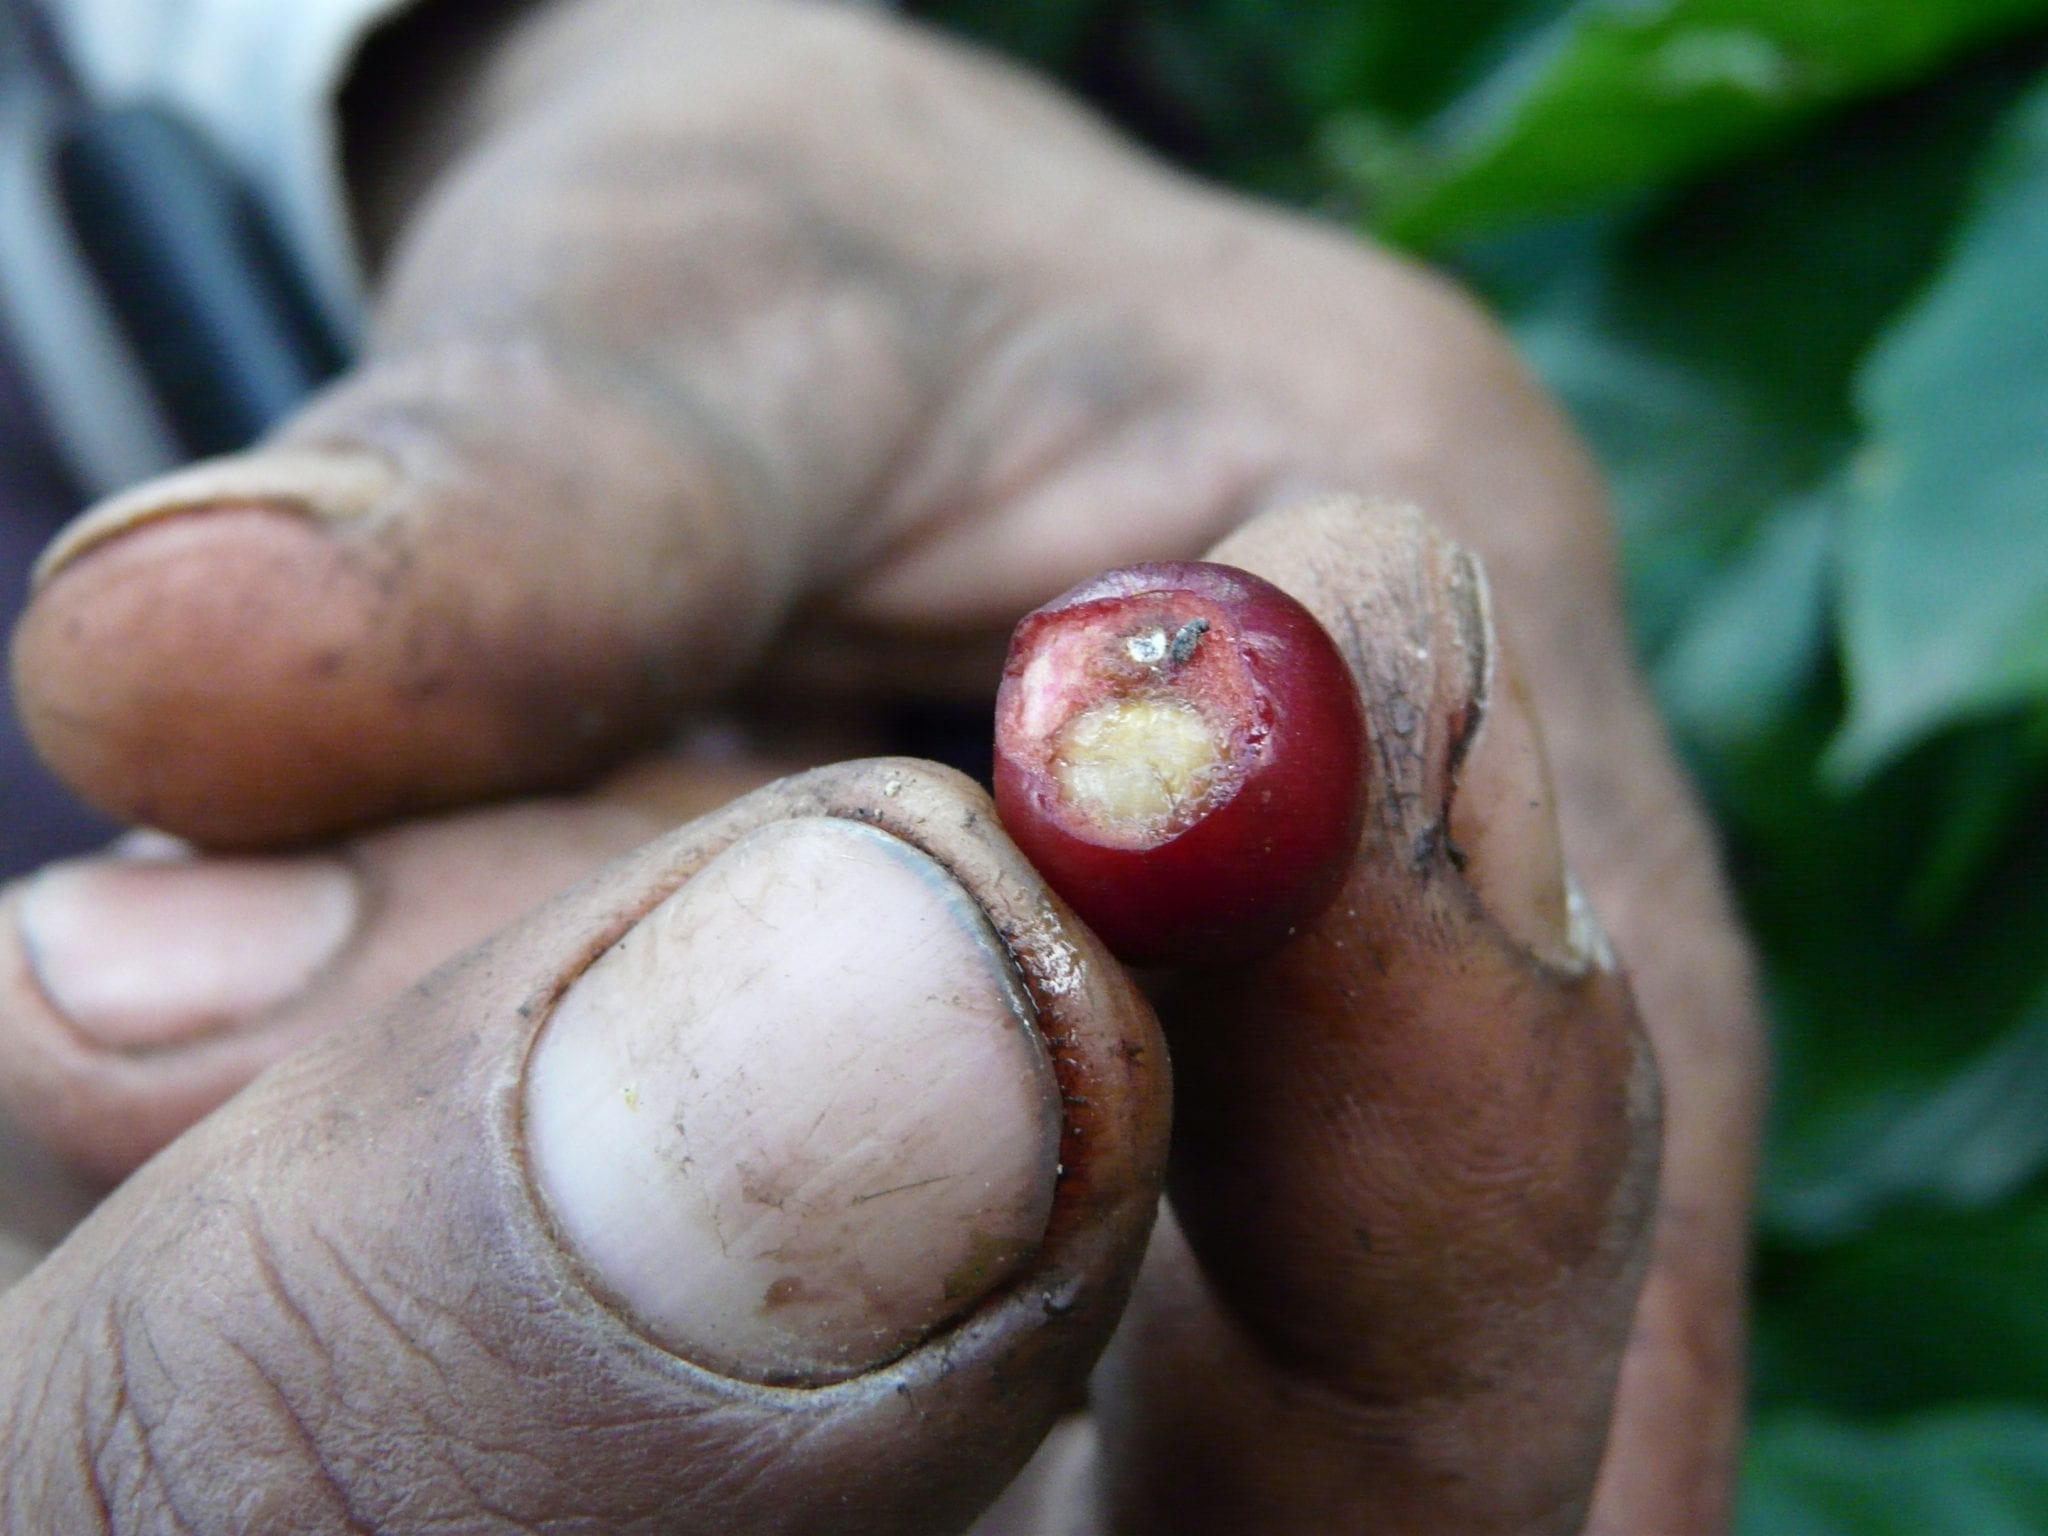 holding a ripe coffee cherry